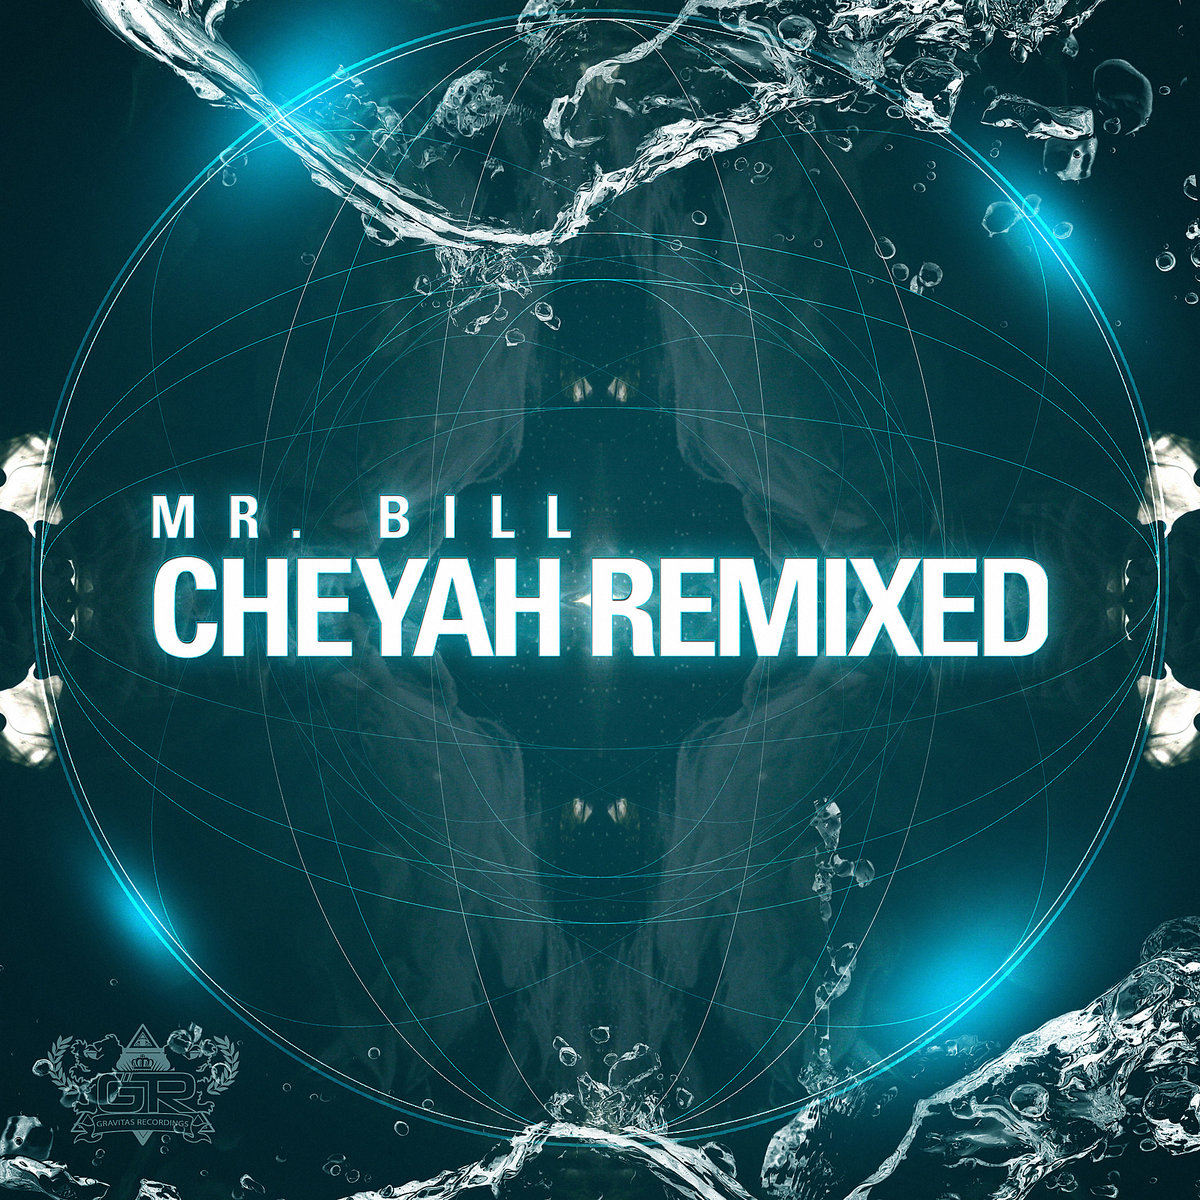 Mr. Bill - Cheyah (Psymbionic & Great Scott Remix) @ 'Cheyah Remixed' album (australia, idm)